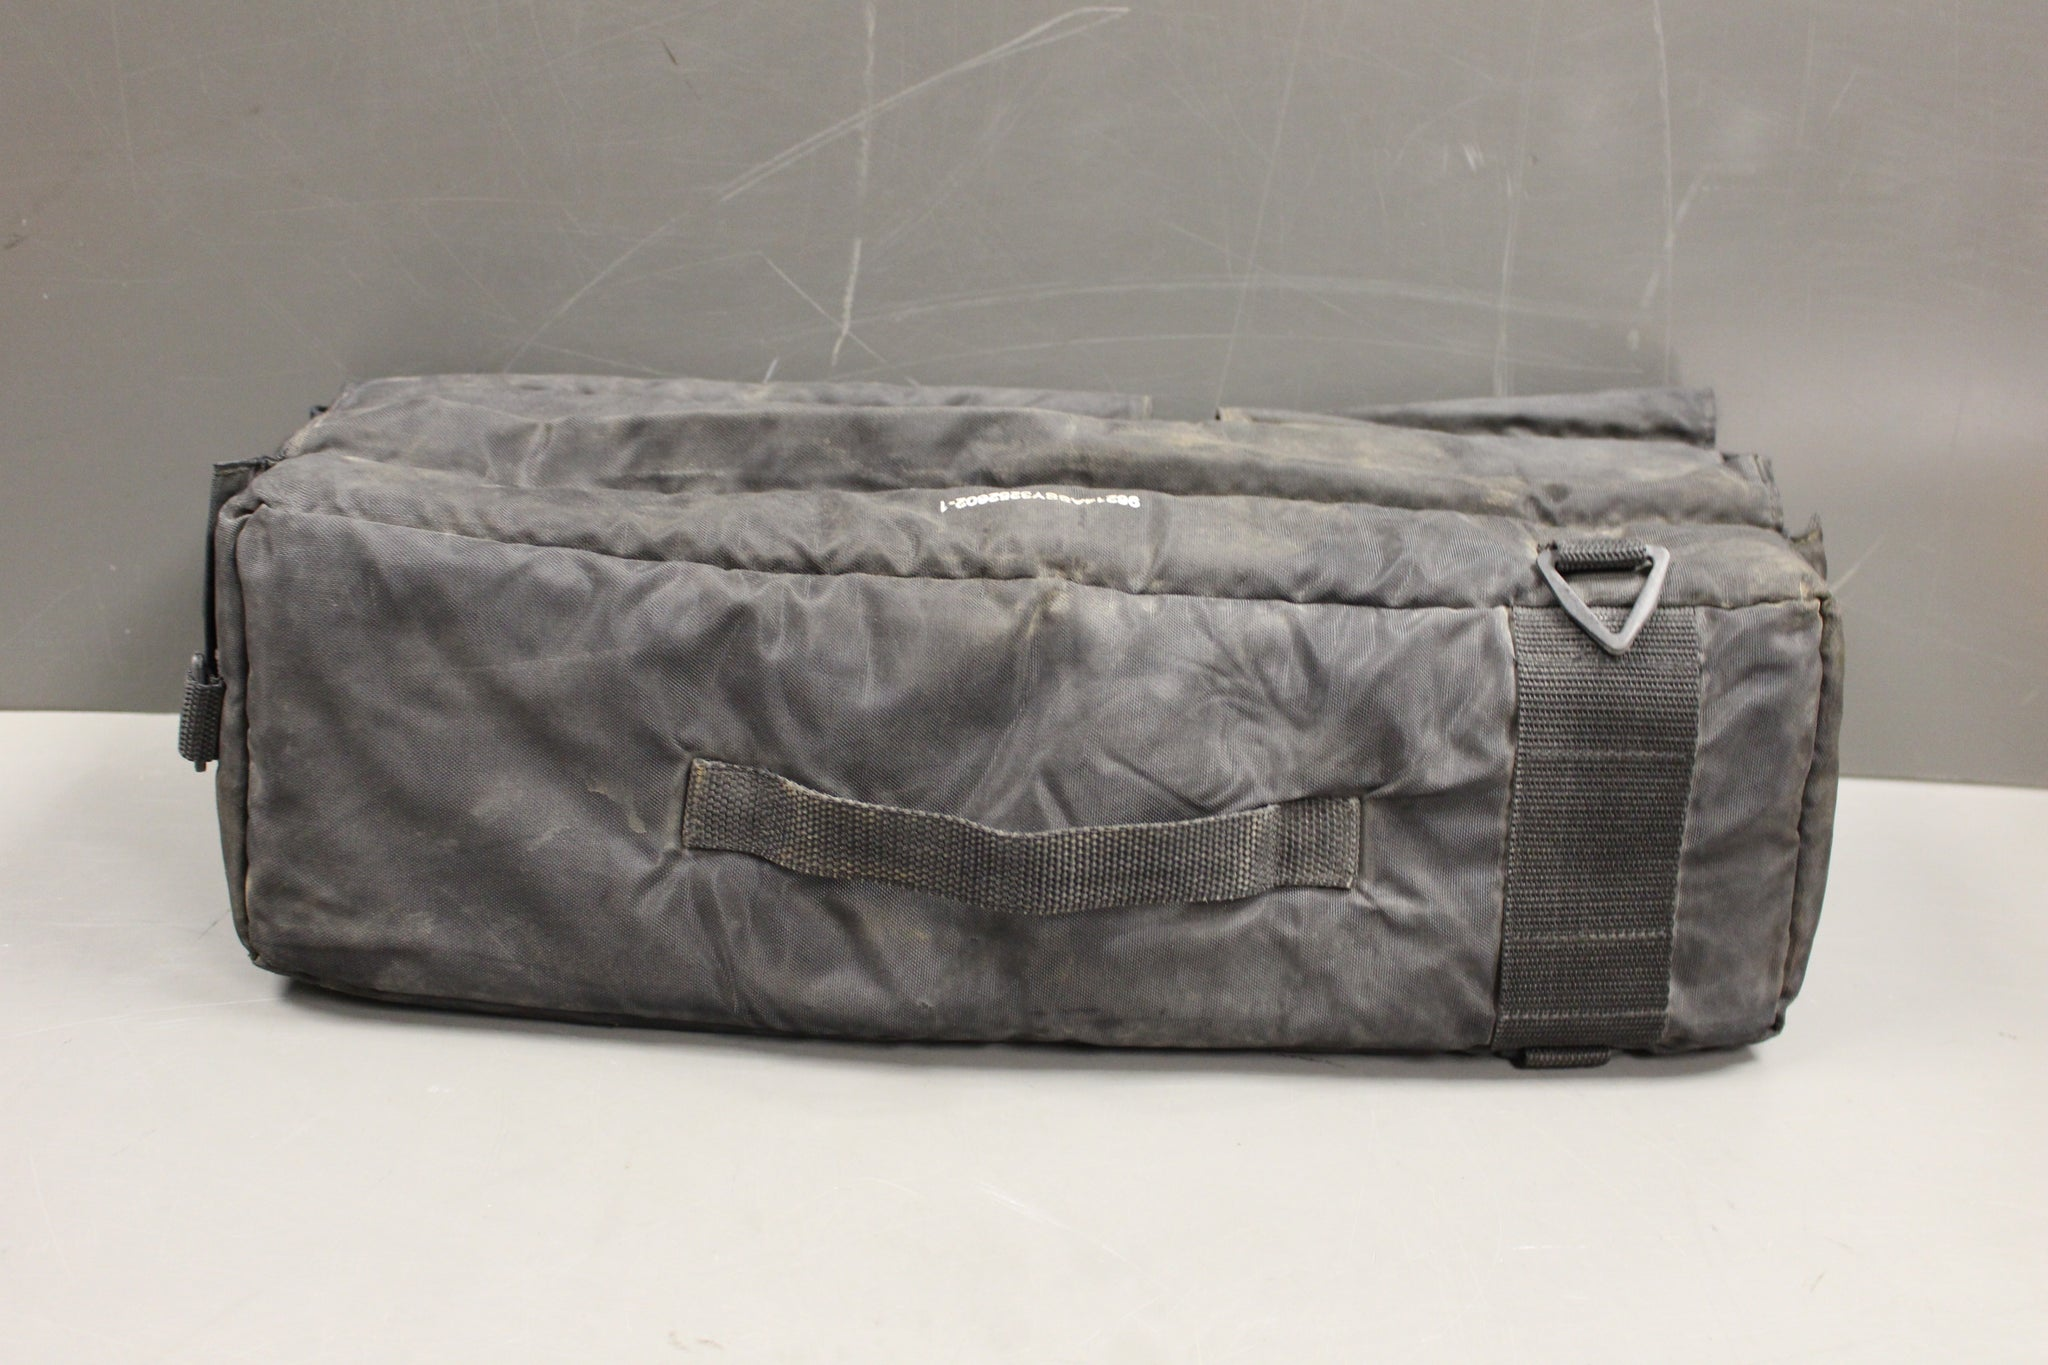 Optical Instrument Case for AN//PAS-13 A /& B 1240-01-490-0746 GradeD 3252602-1